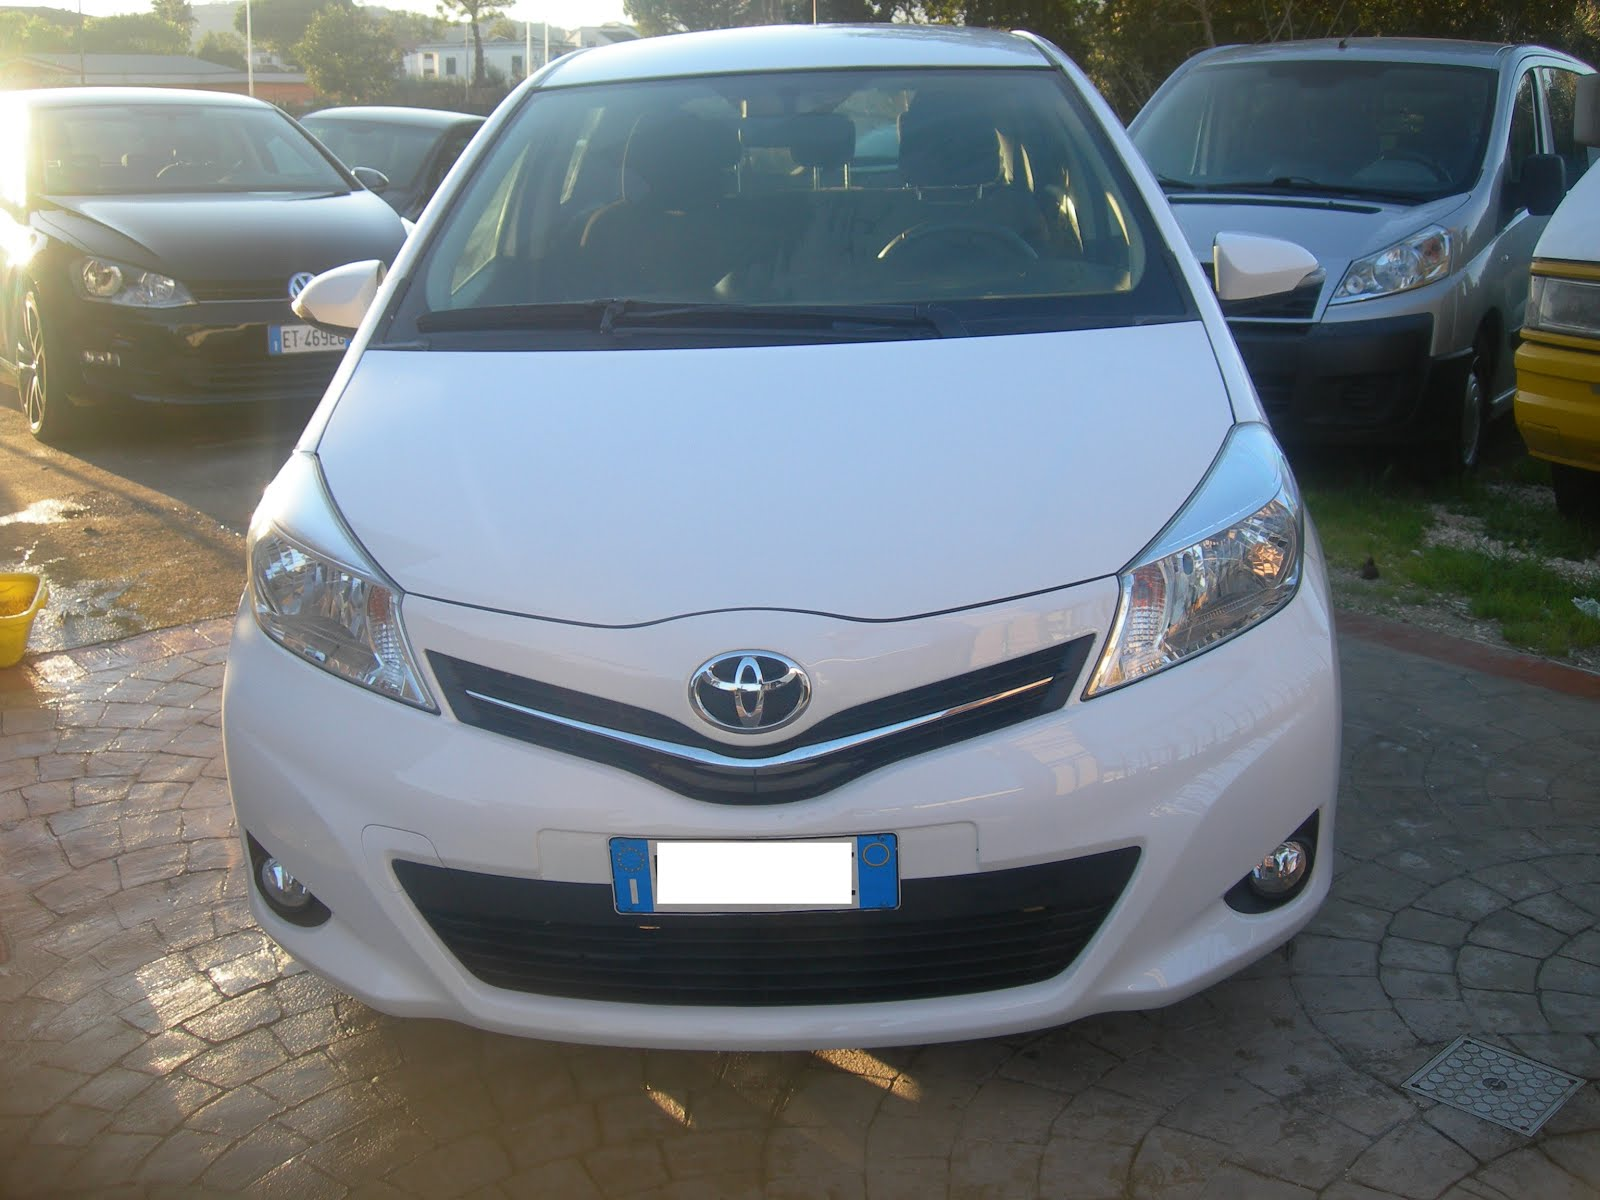 Toyota New Yaris 1.0 Lounge anno 2013 35.000 km  full optional  Prezzo 8.000,00